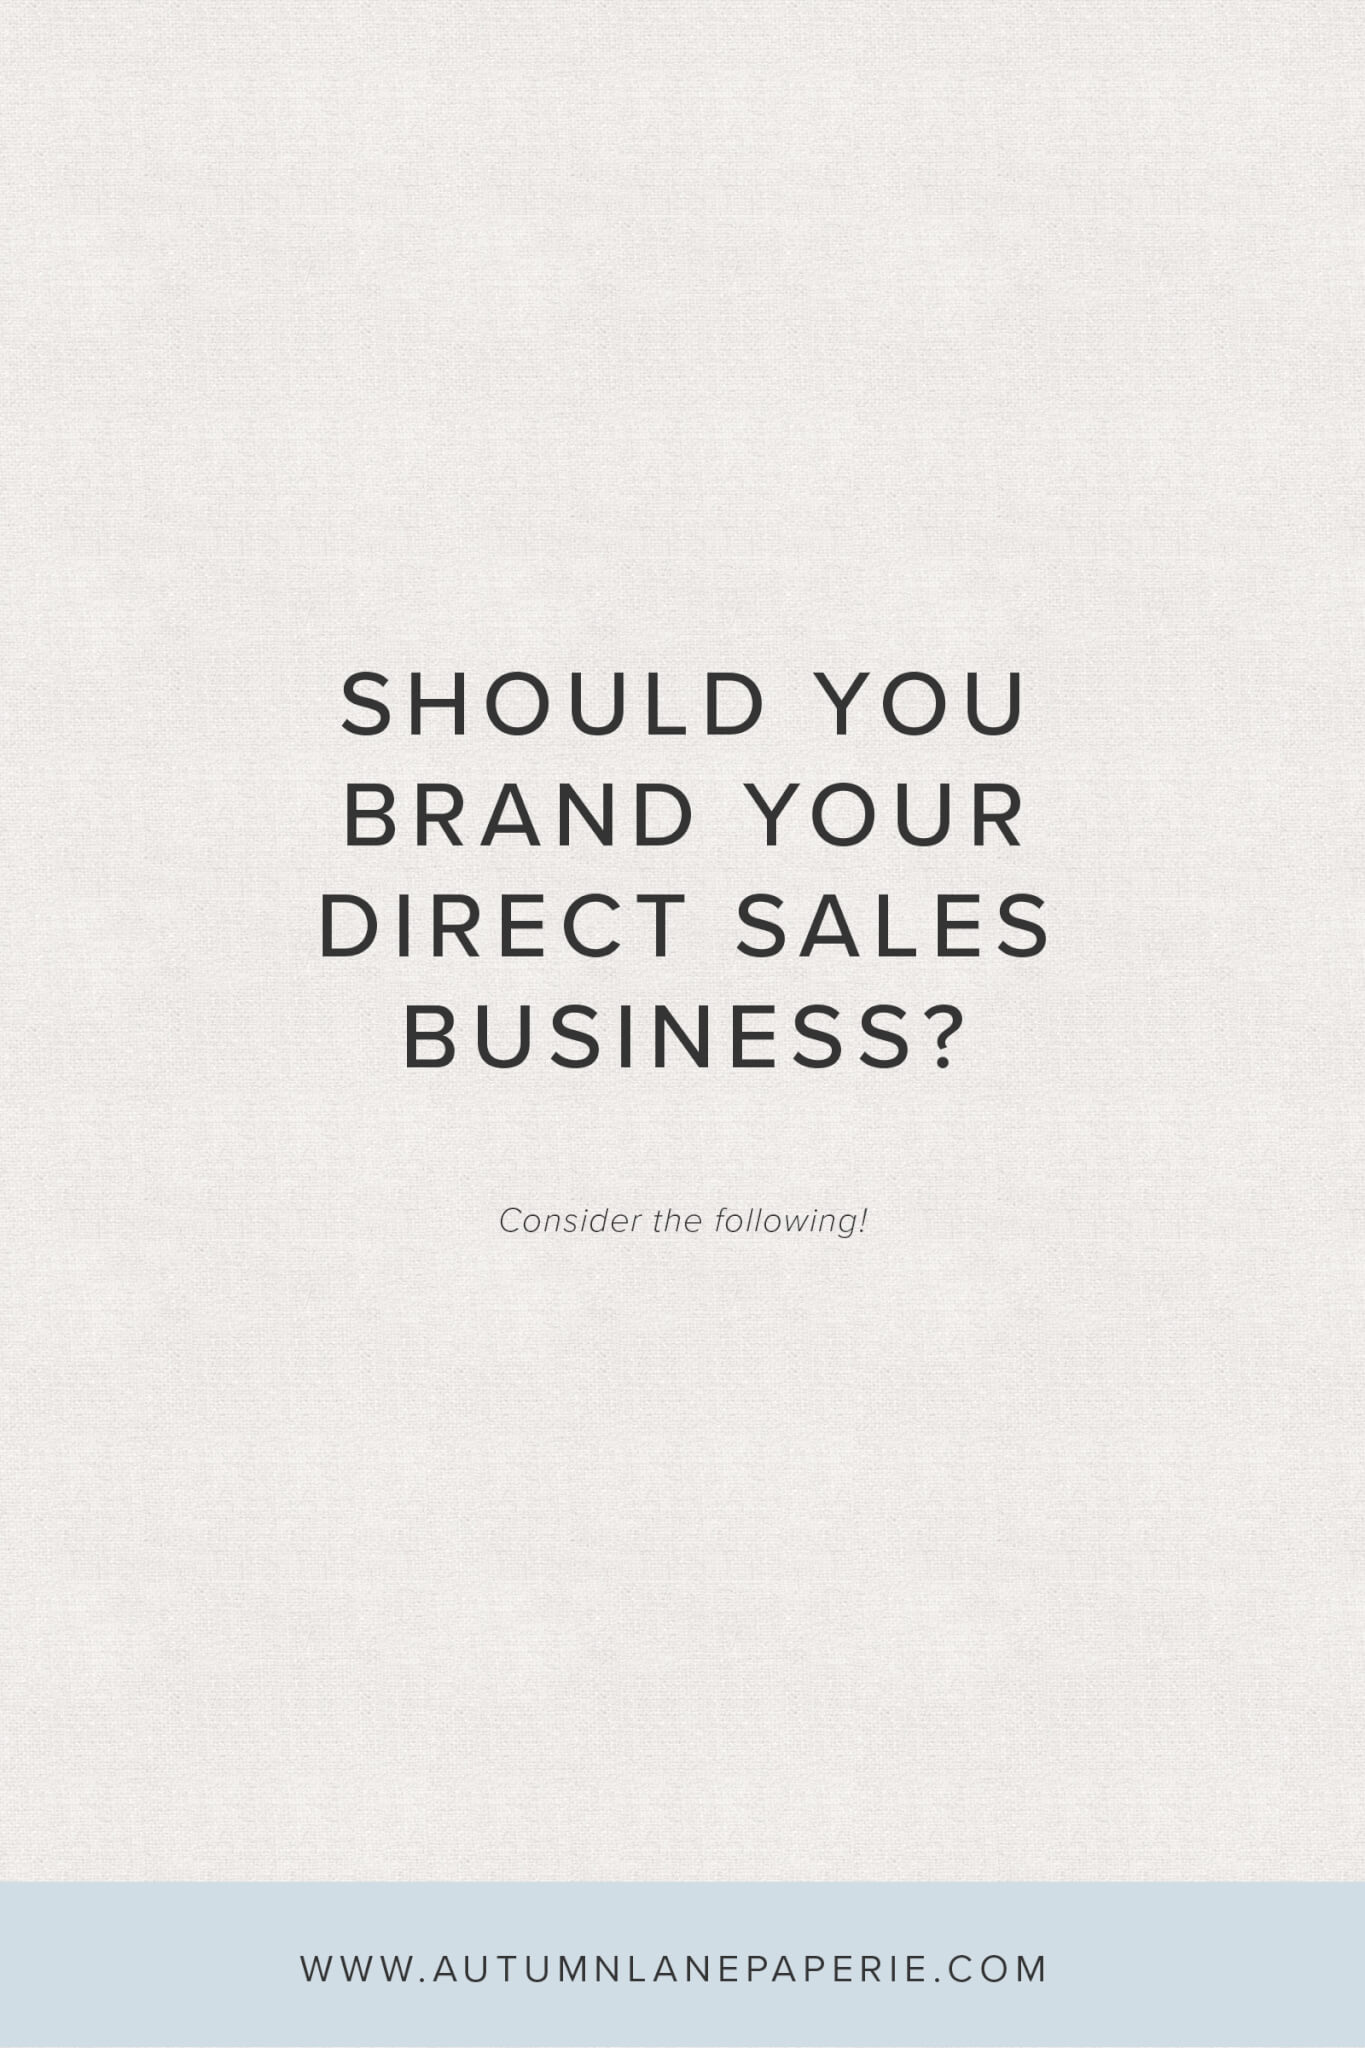 Should You Brand Your Direct Sales Business?